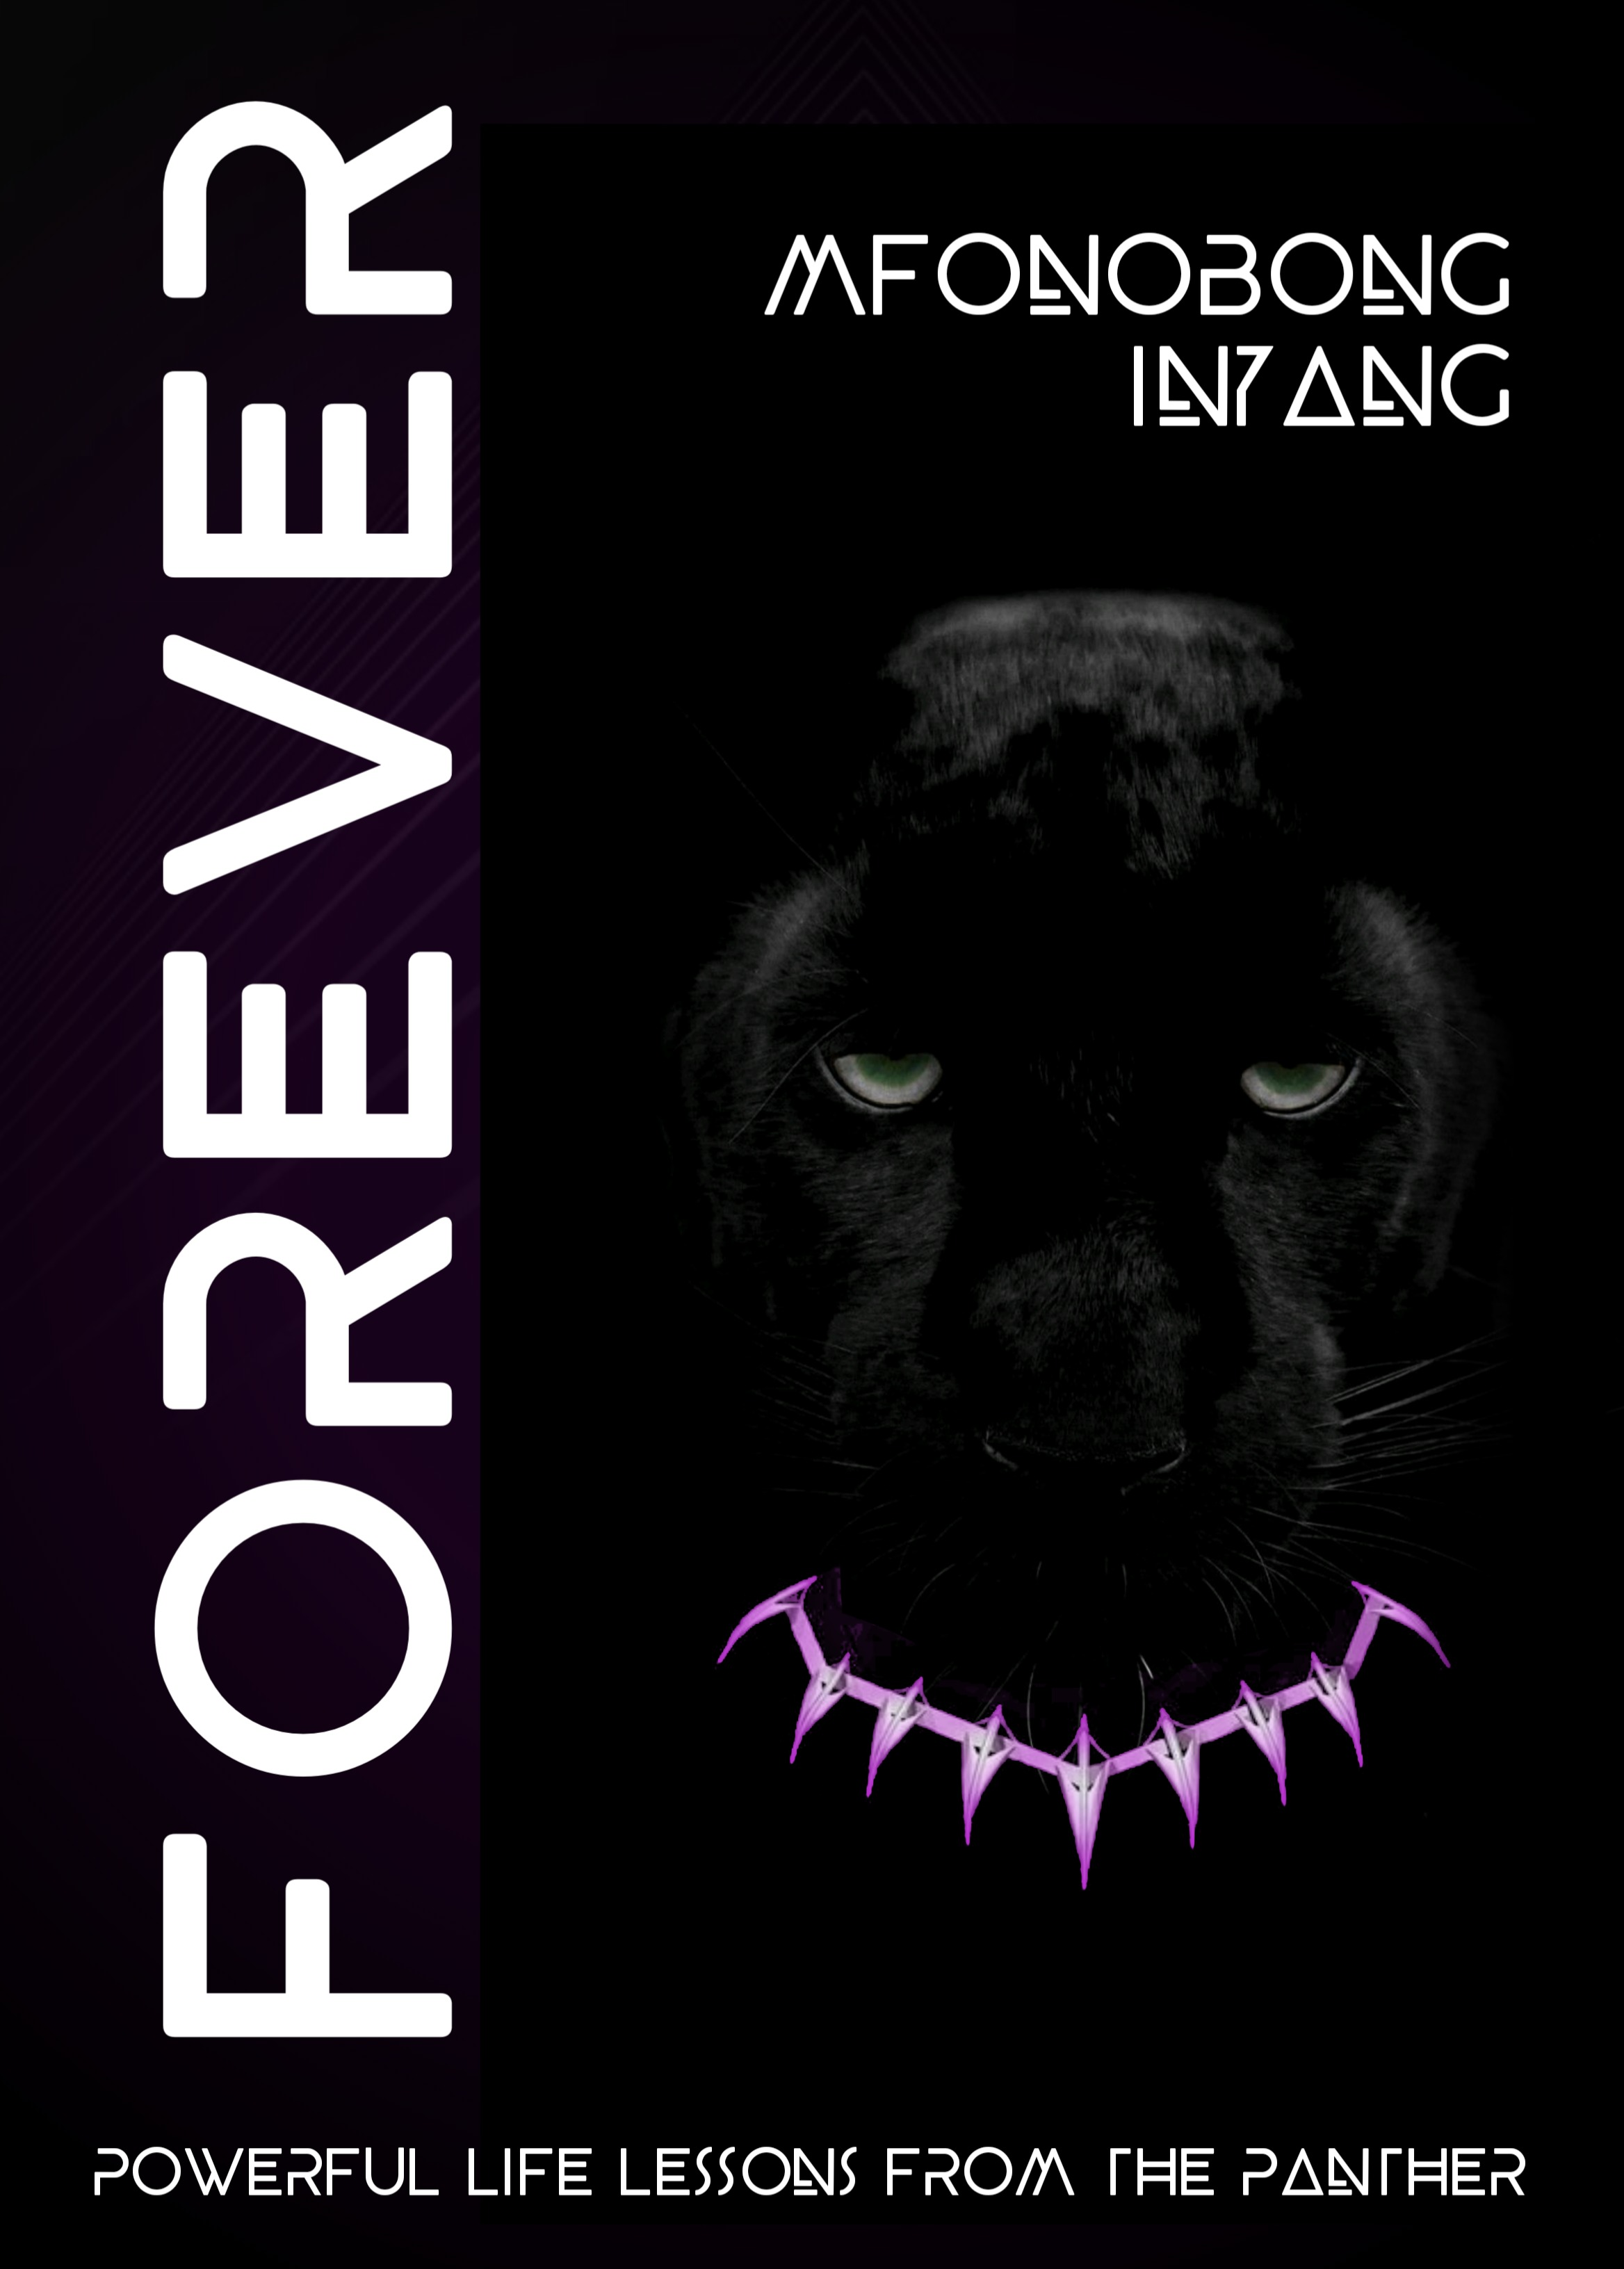 Forever! Powerful Life Lessons From The Panther